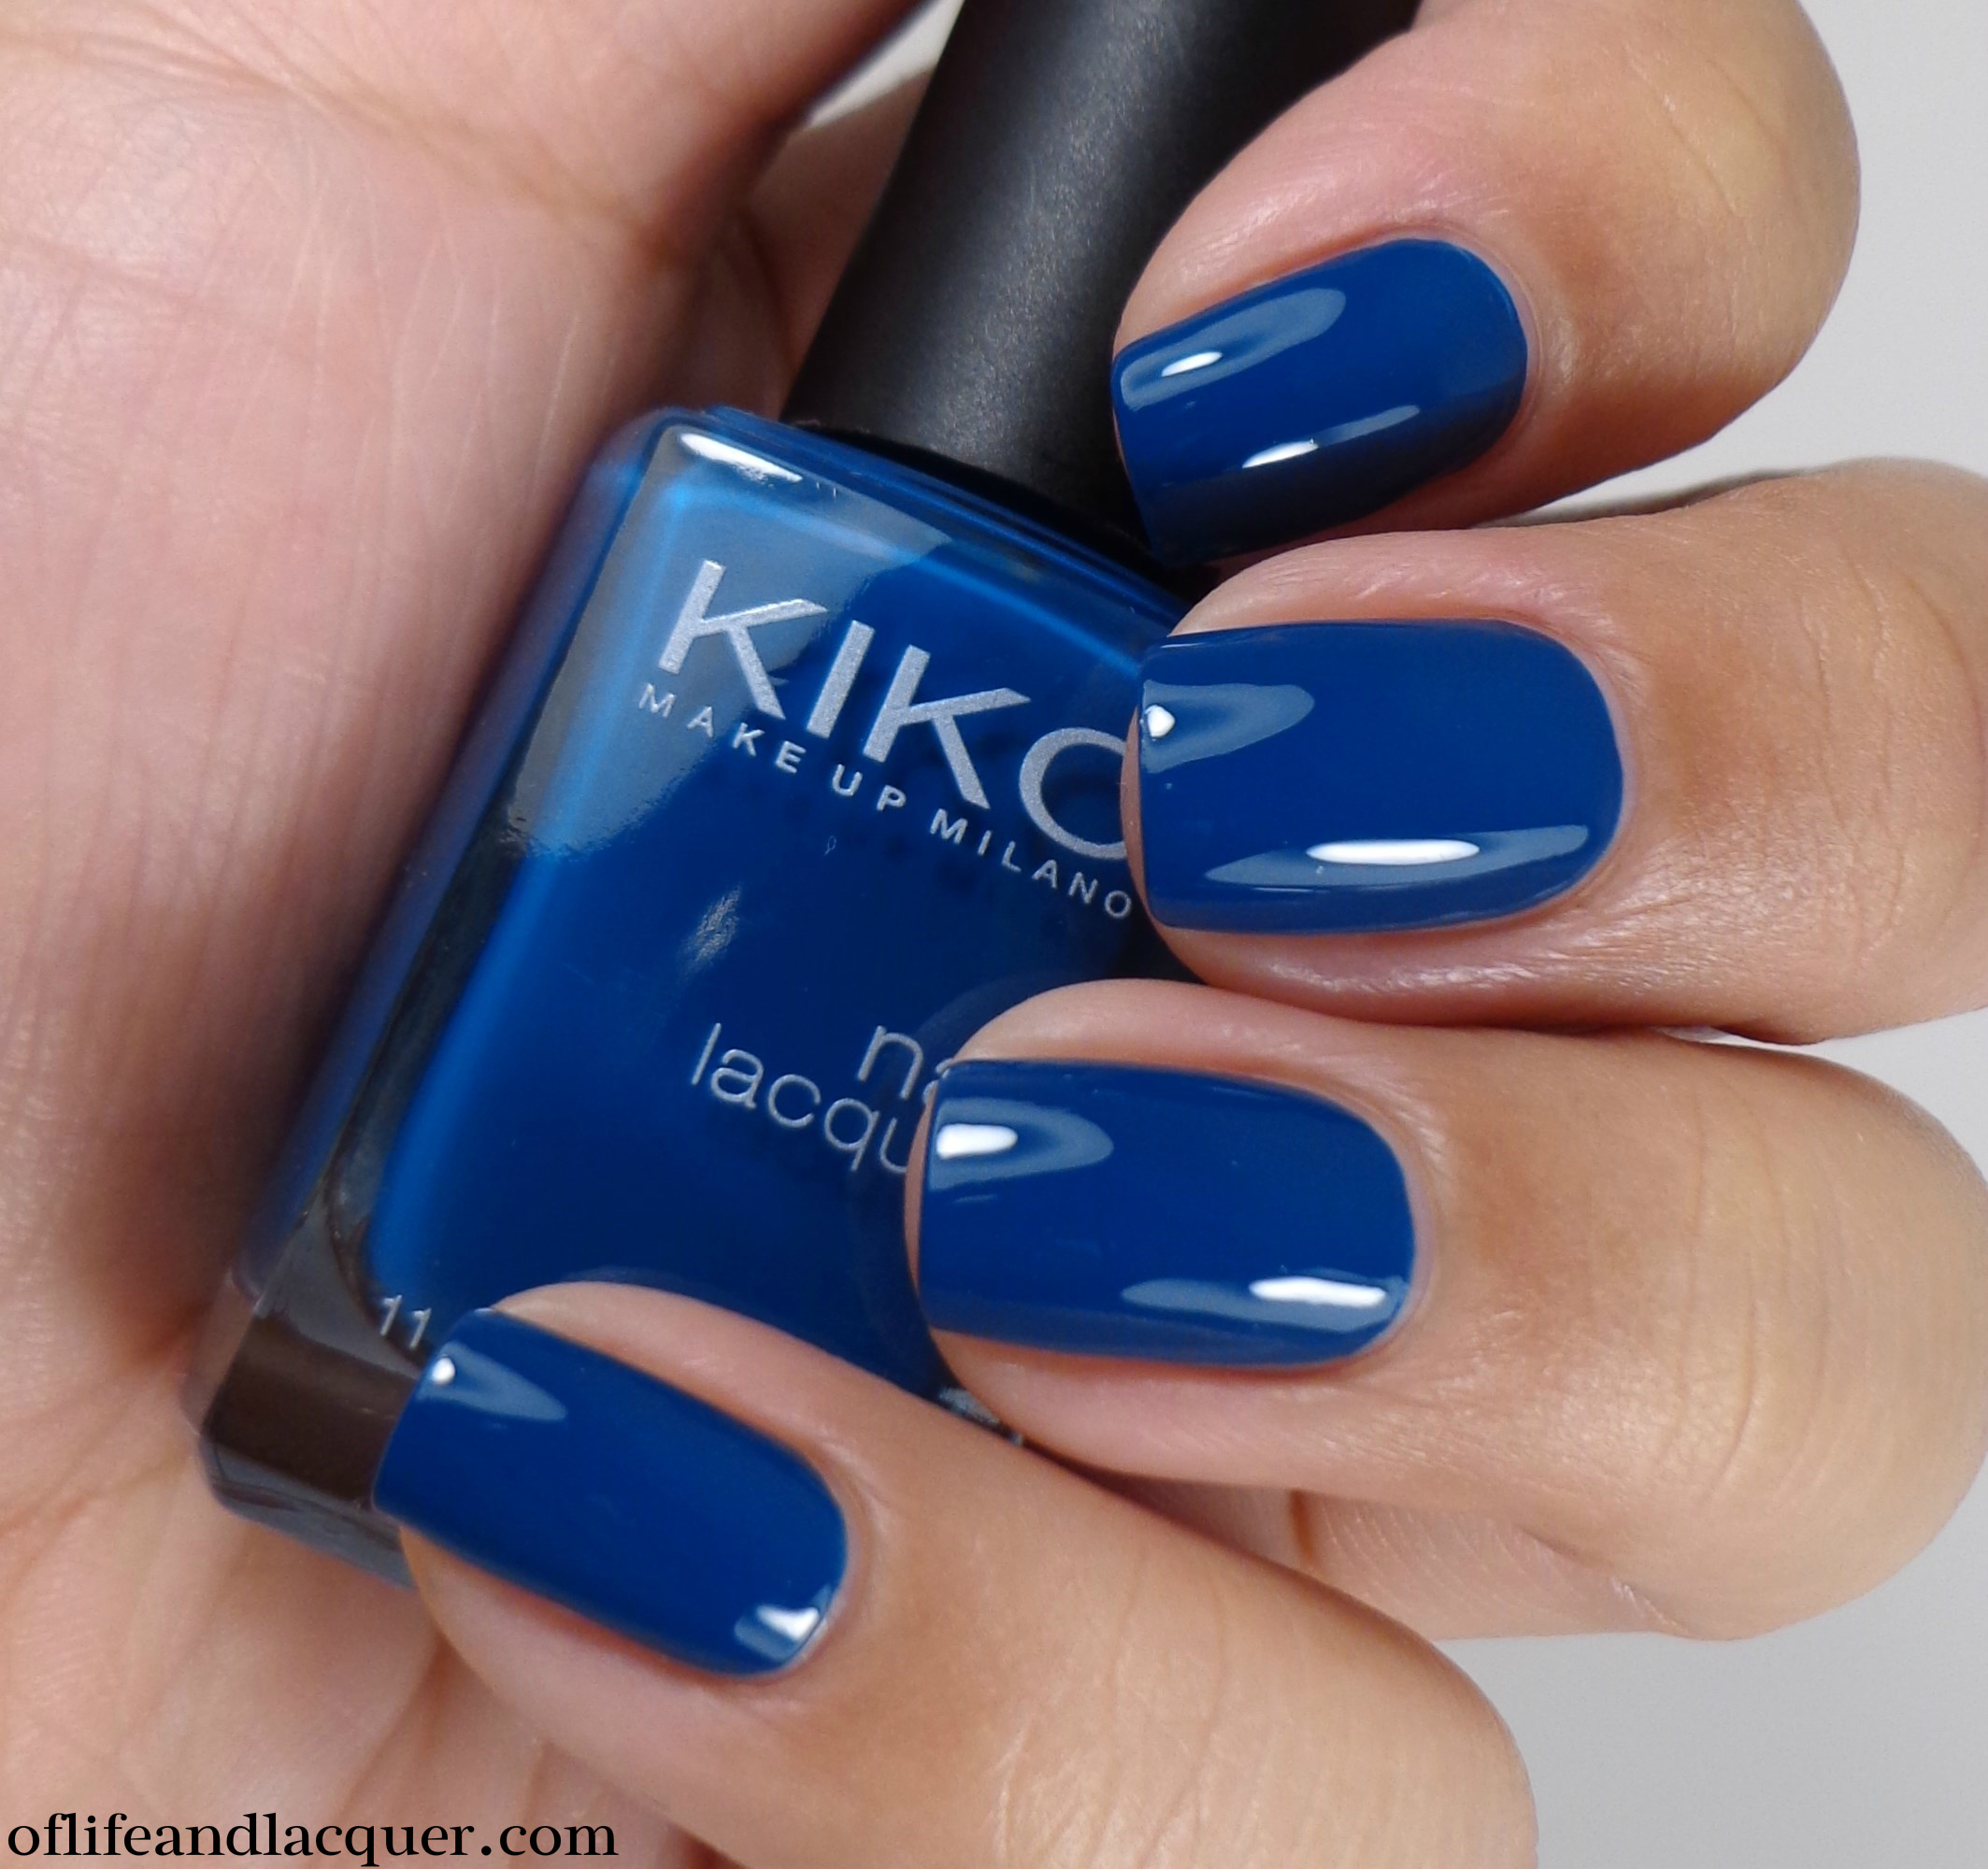 Kiko Archives - Of Life and Lacquer